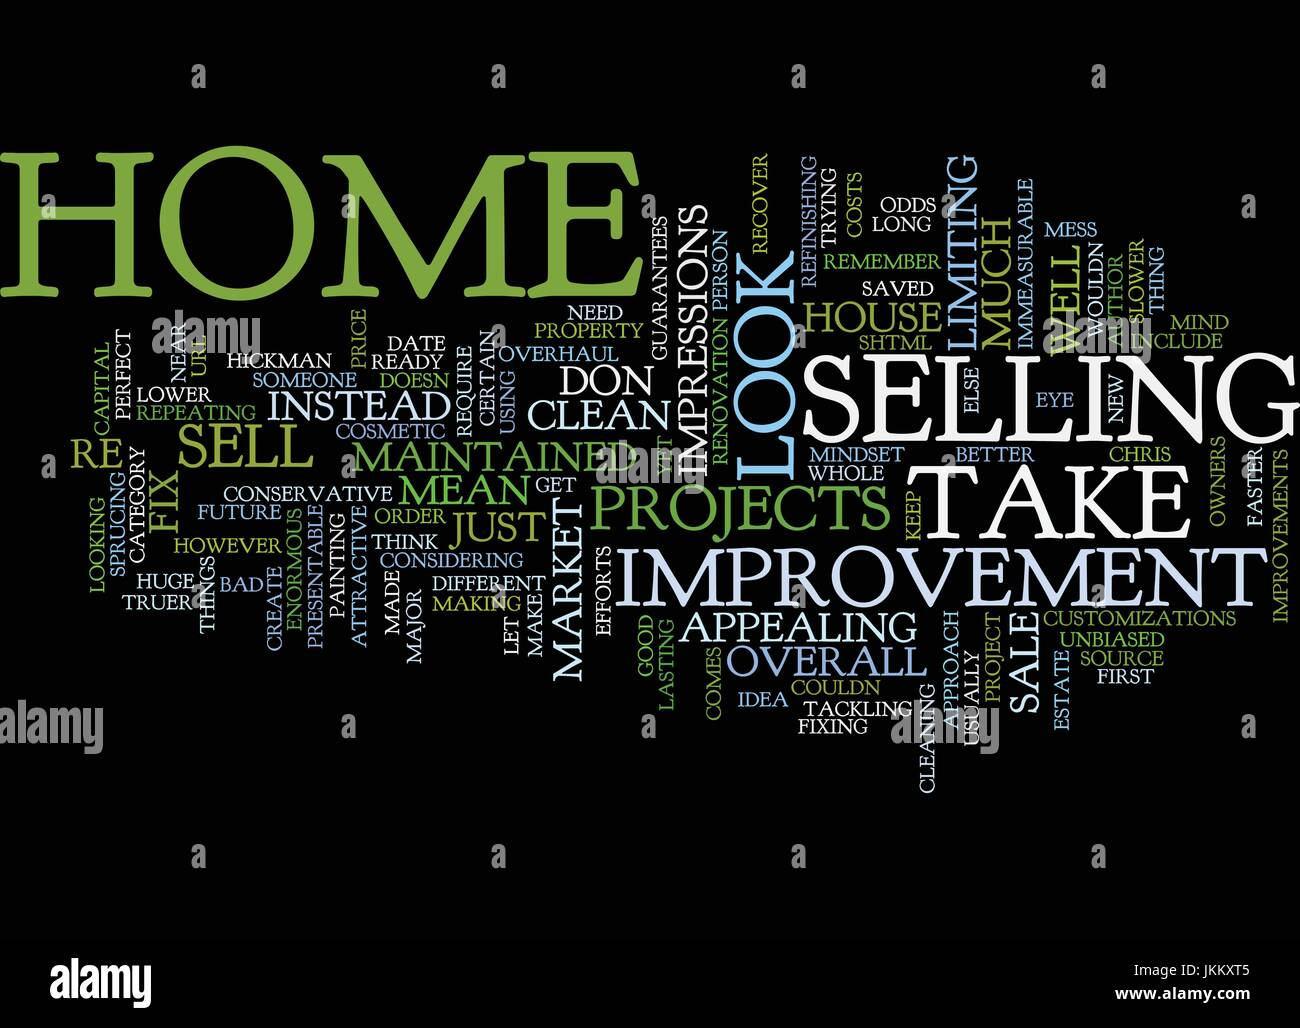 GET YOUR HOME READY TO SELL Text Background Word Cloud Concept - Stock Image